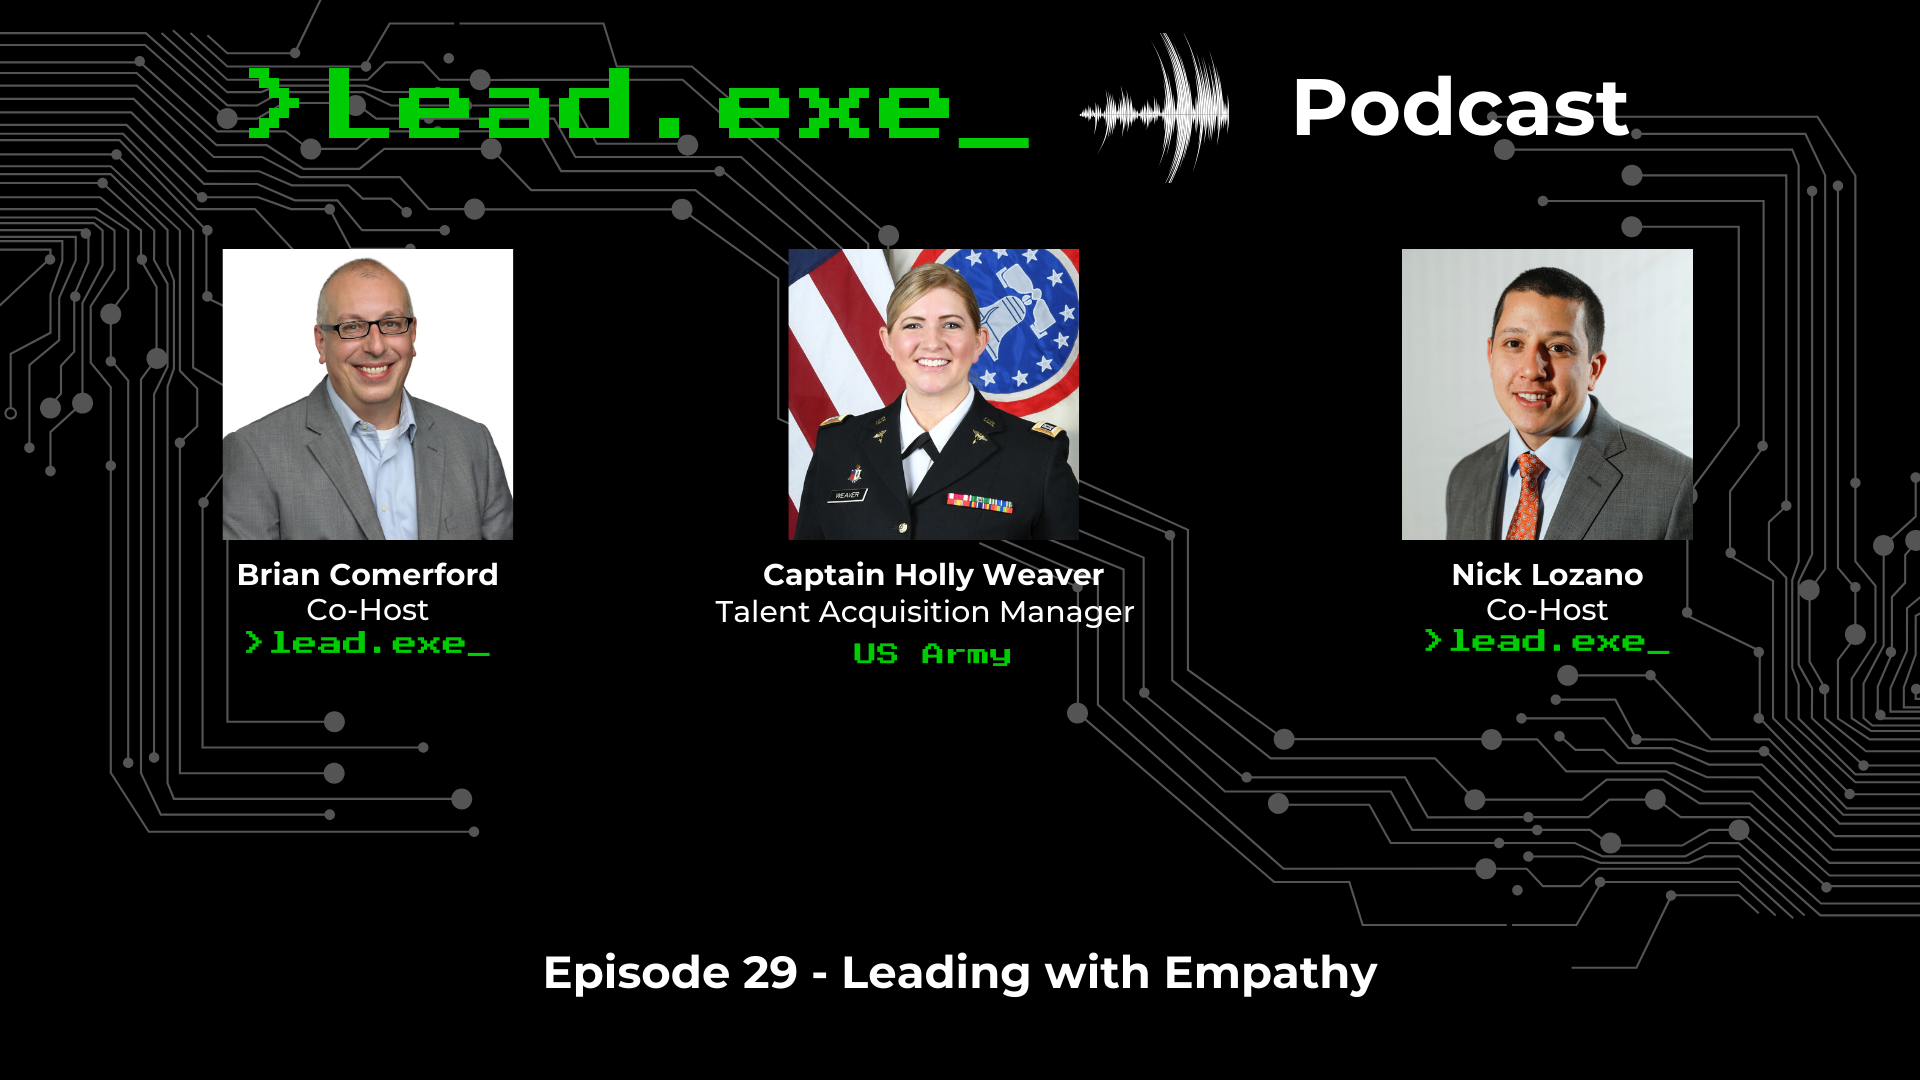 Episode 29: Leading with Empathy with Holly Weaver